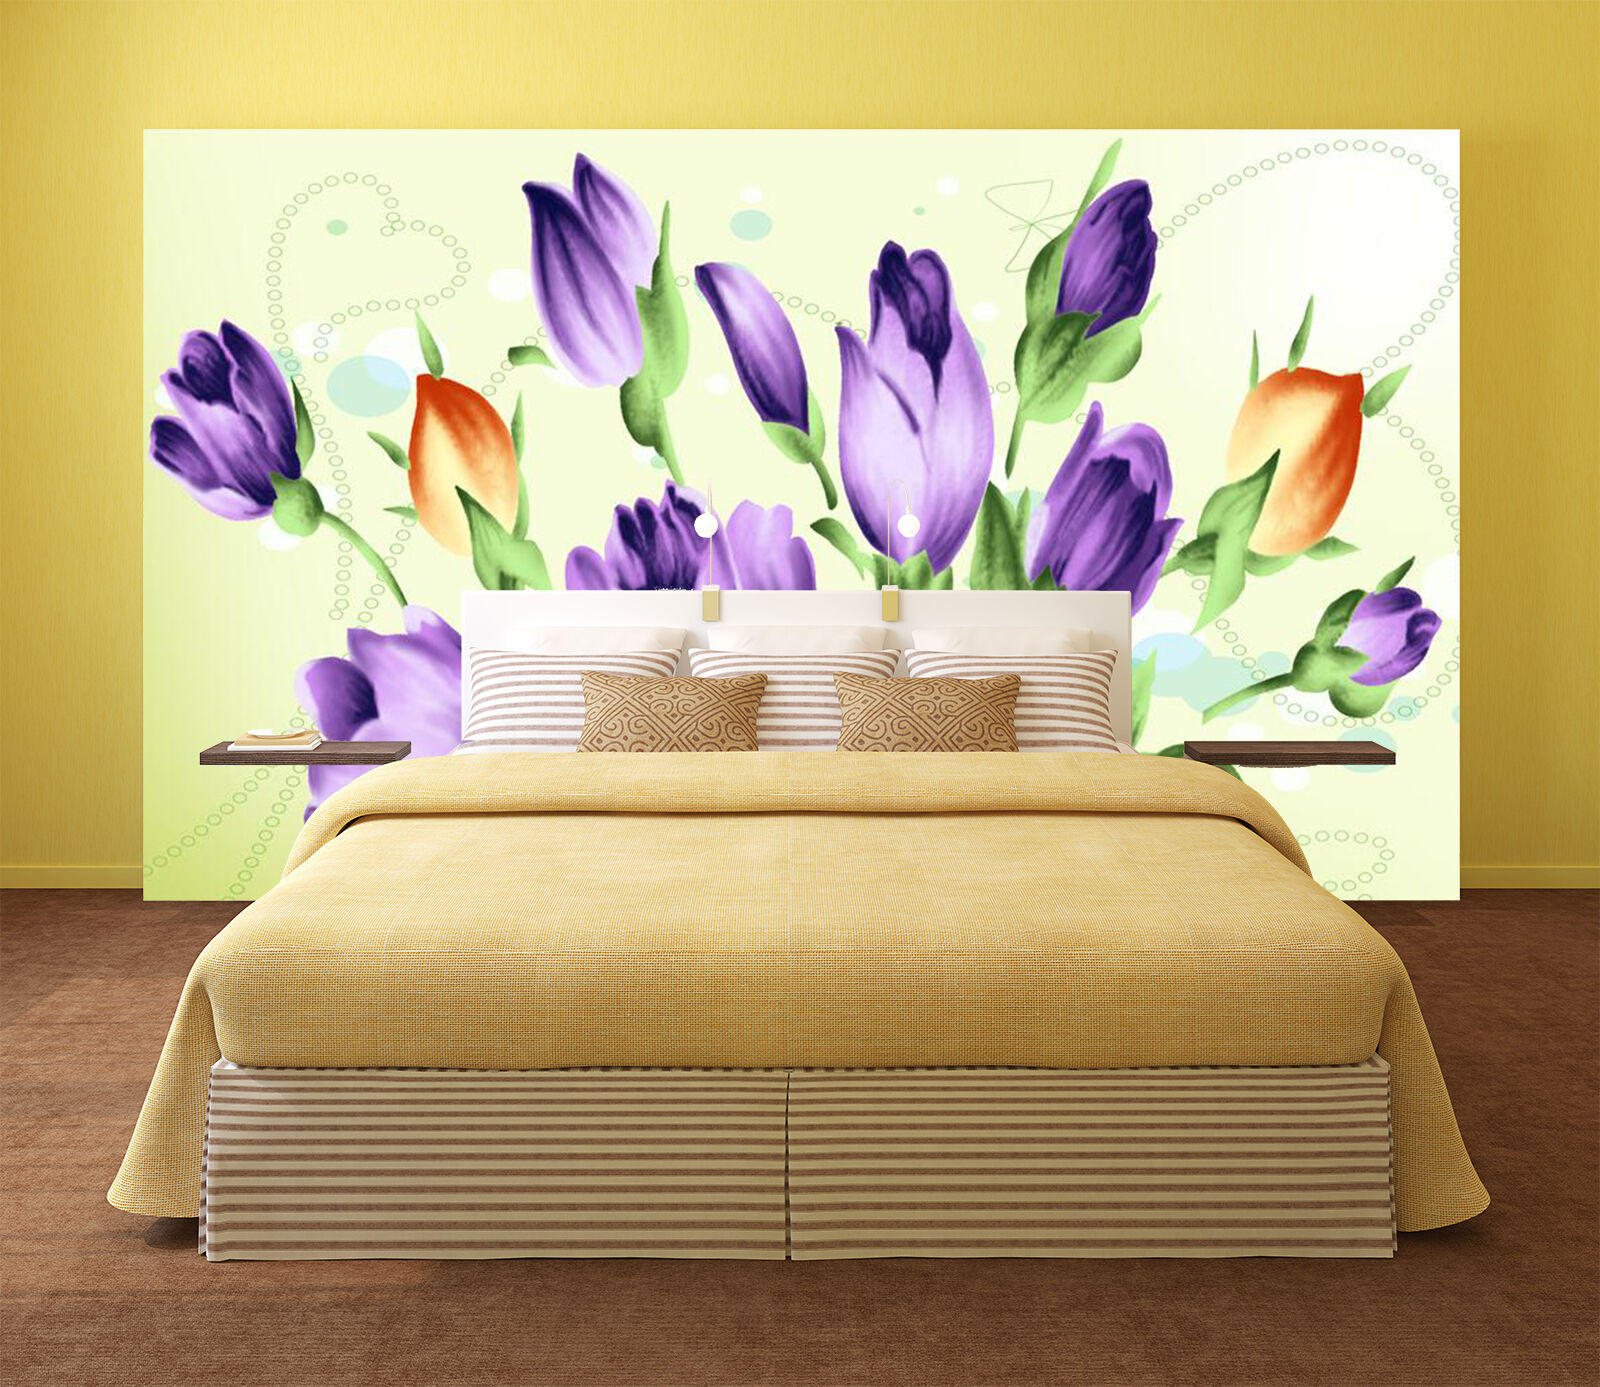 3D Fashion Flowers Bouquet 1 Wall Paper Print Decal Wall Deco Indoor wall Mural